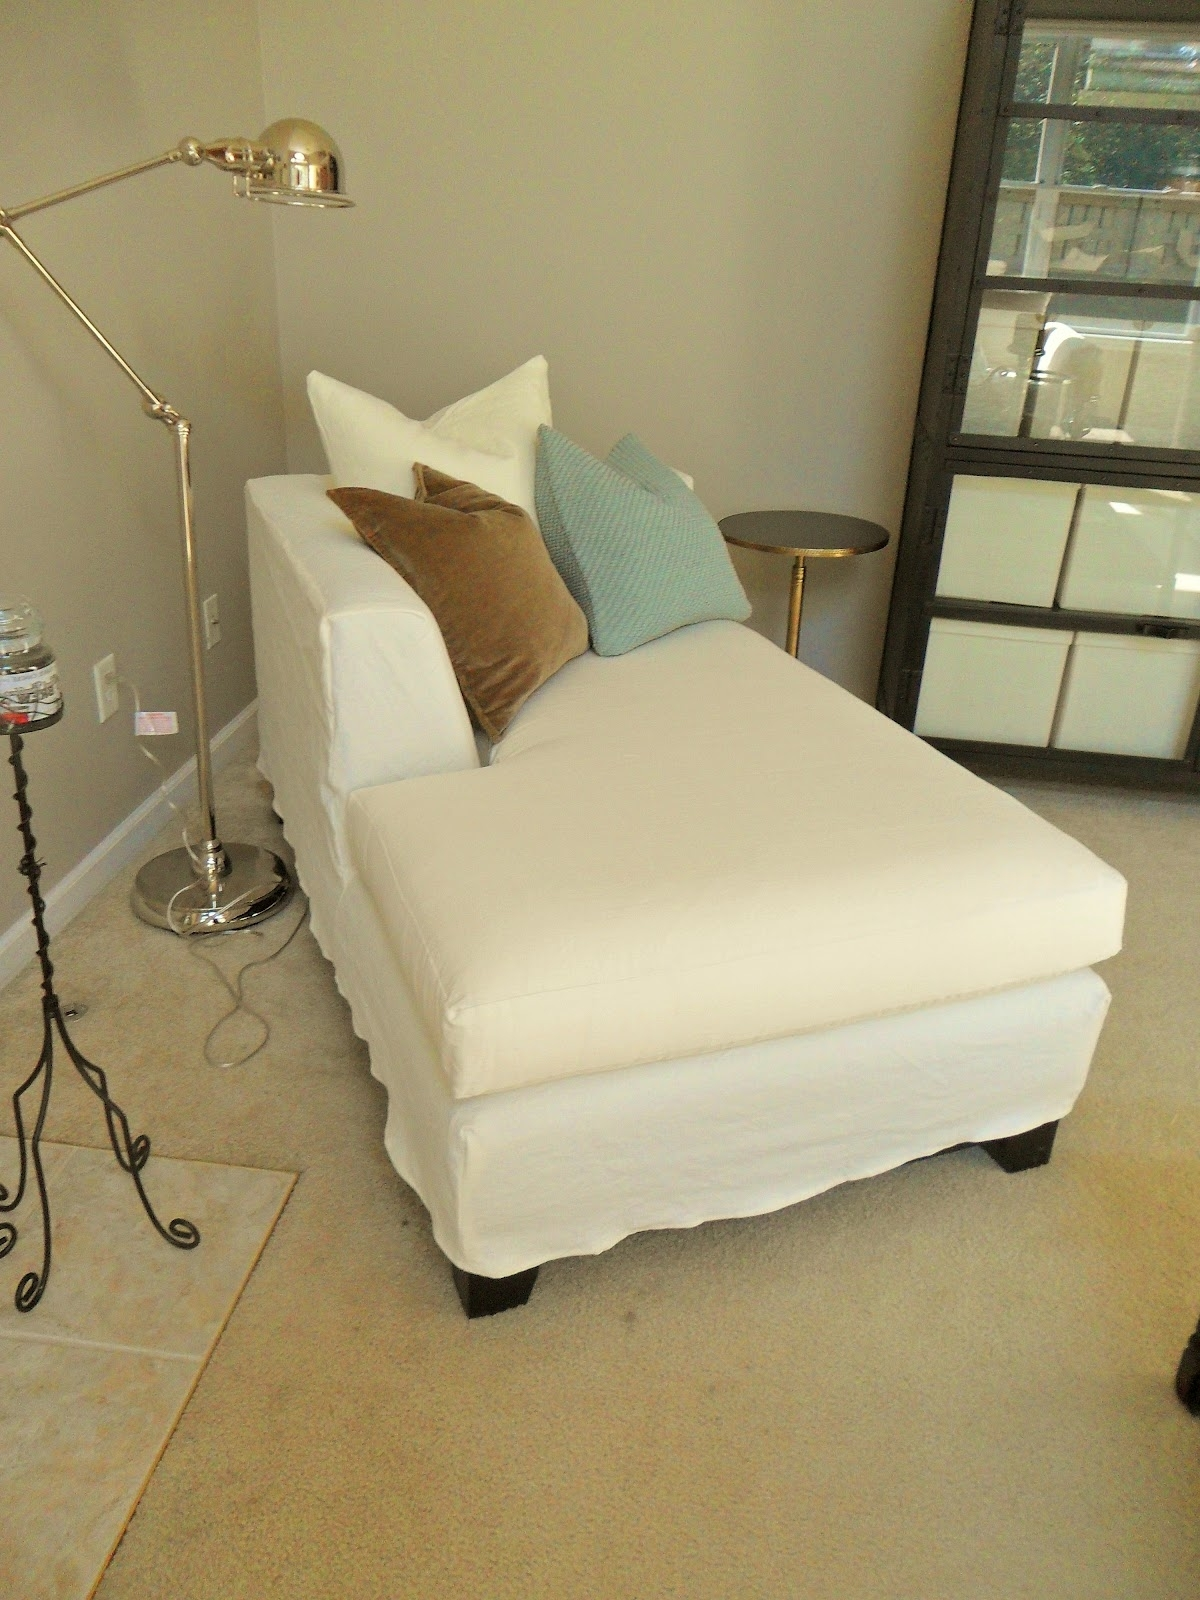 Chaise Lounge Slipcovers With Regard To Fashionable Chaise Lounge Slipcovers Images – Home Furniture Ideas (View 6 of 15)